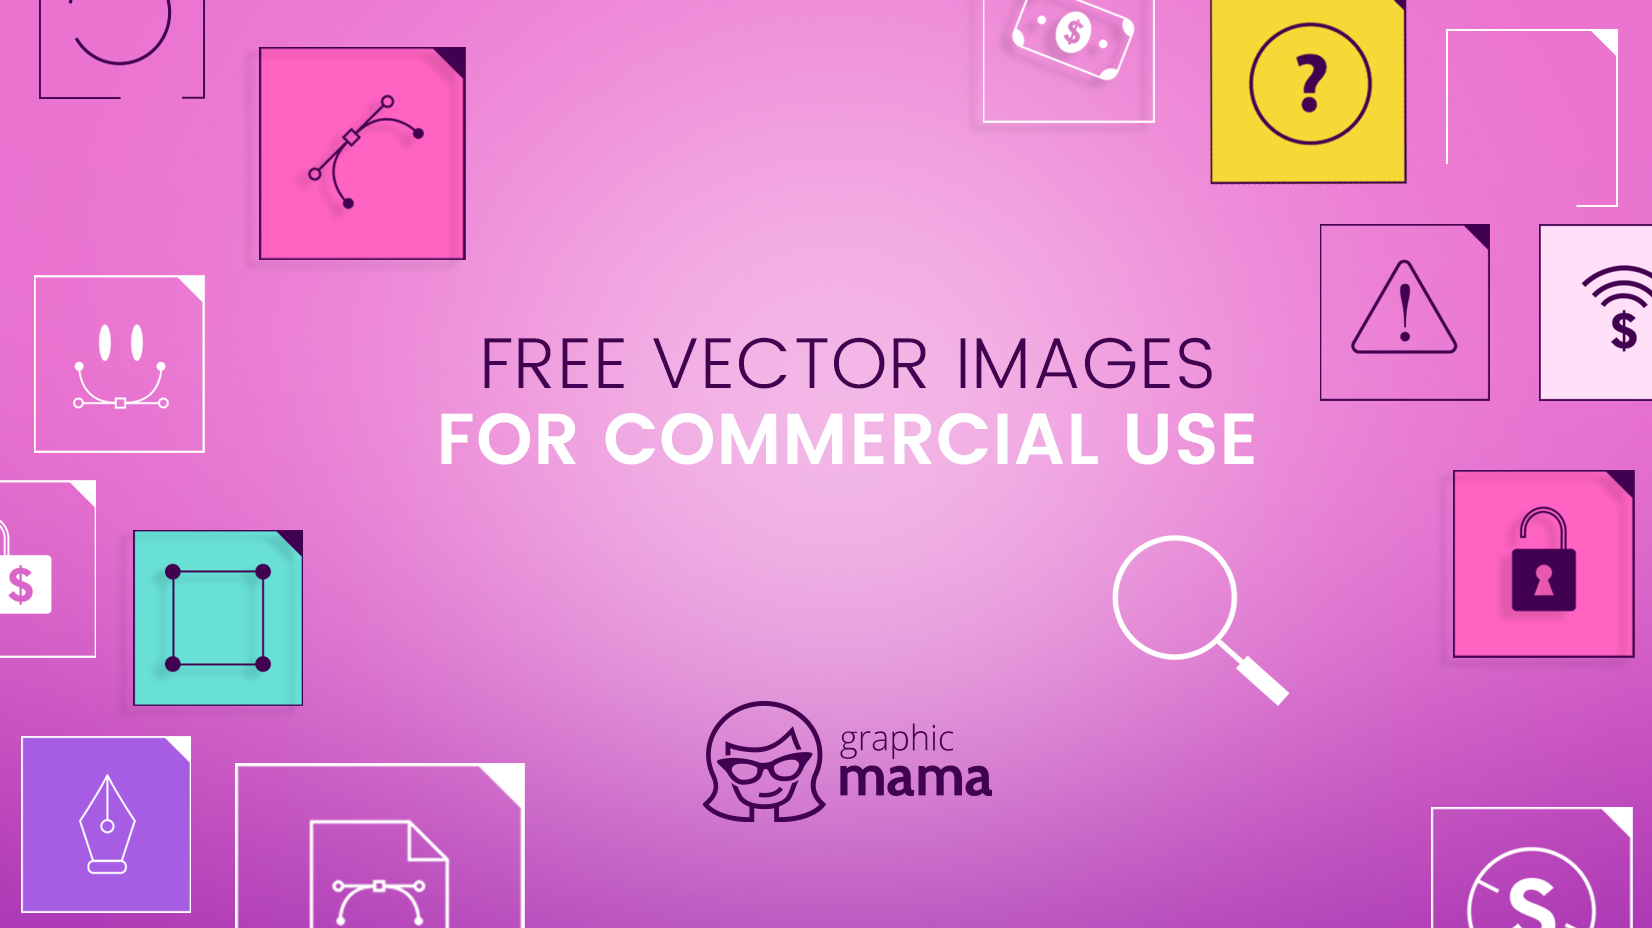 Where to Find Free Vector Images for Commercial Use?.